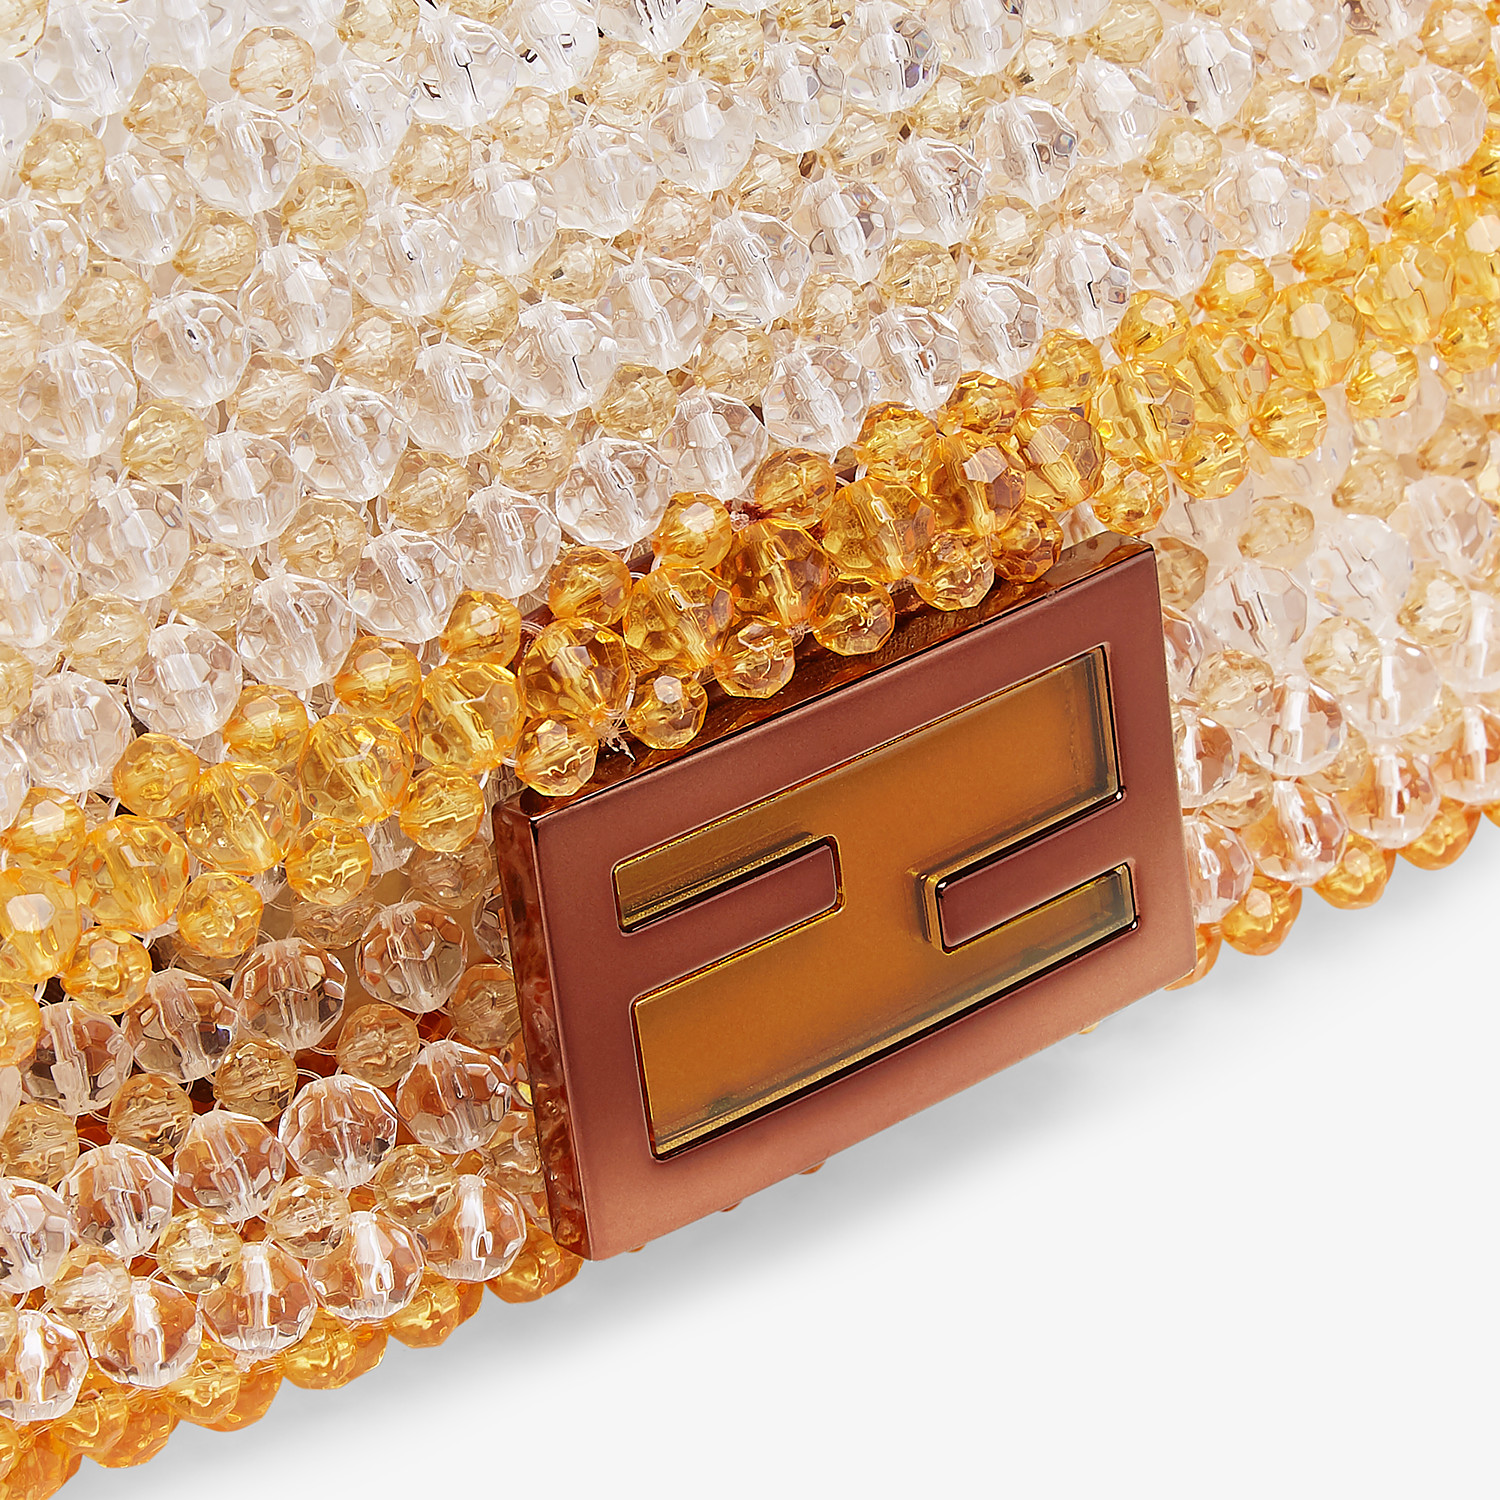 FENDI BAGUETTE - Bag with yellow beads - view 5 detail